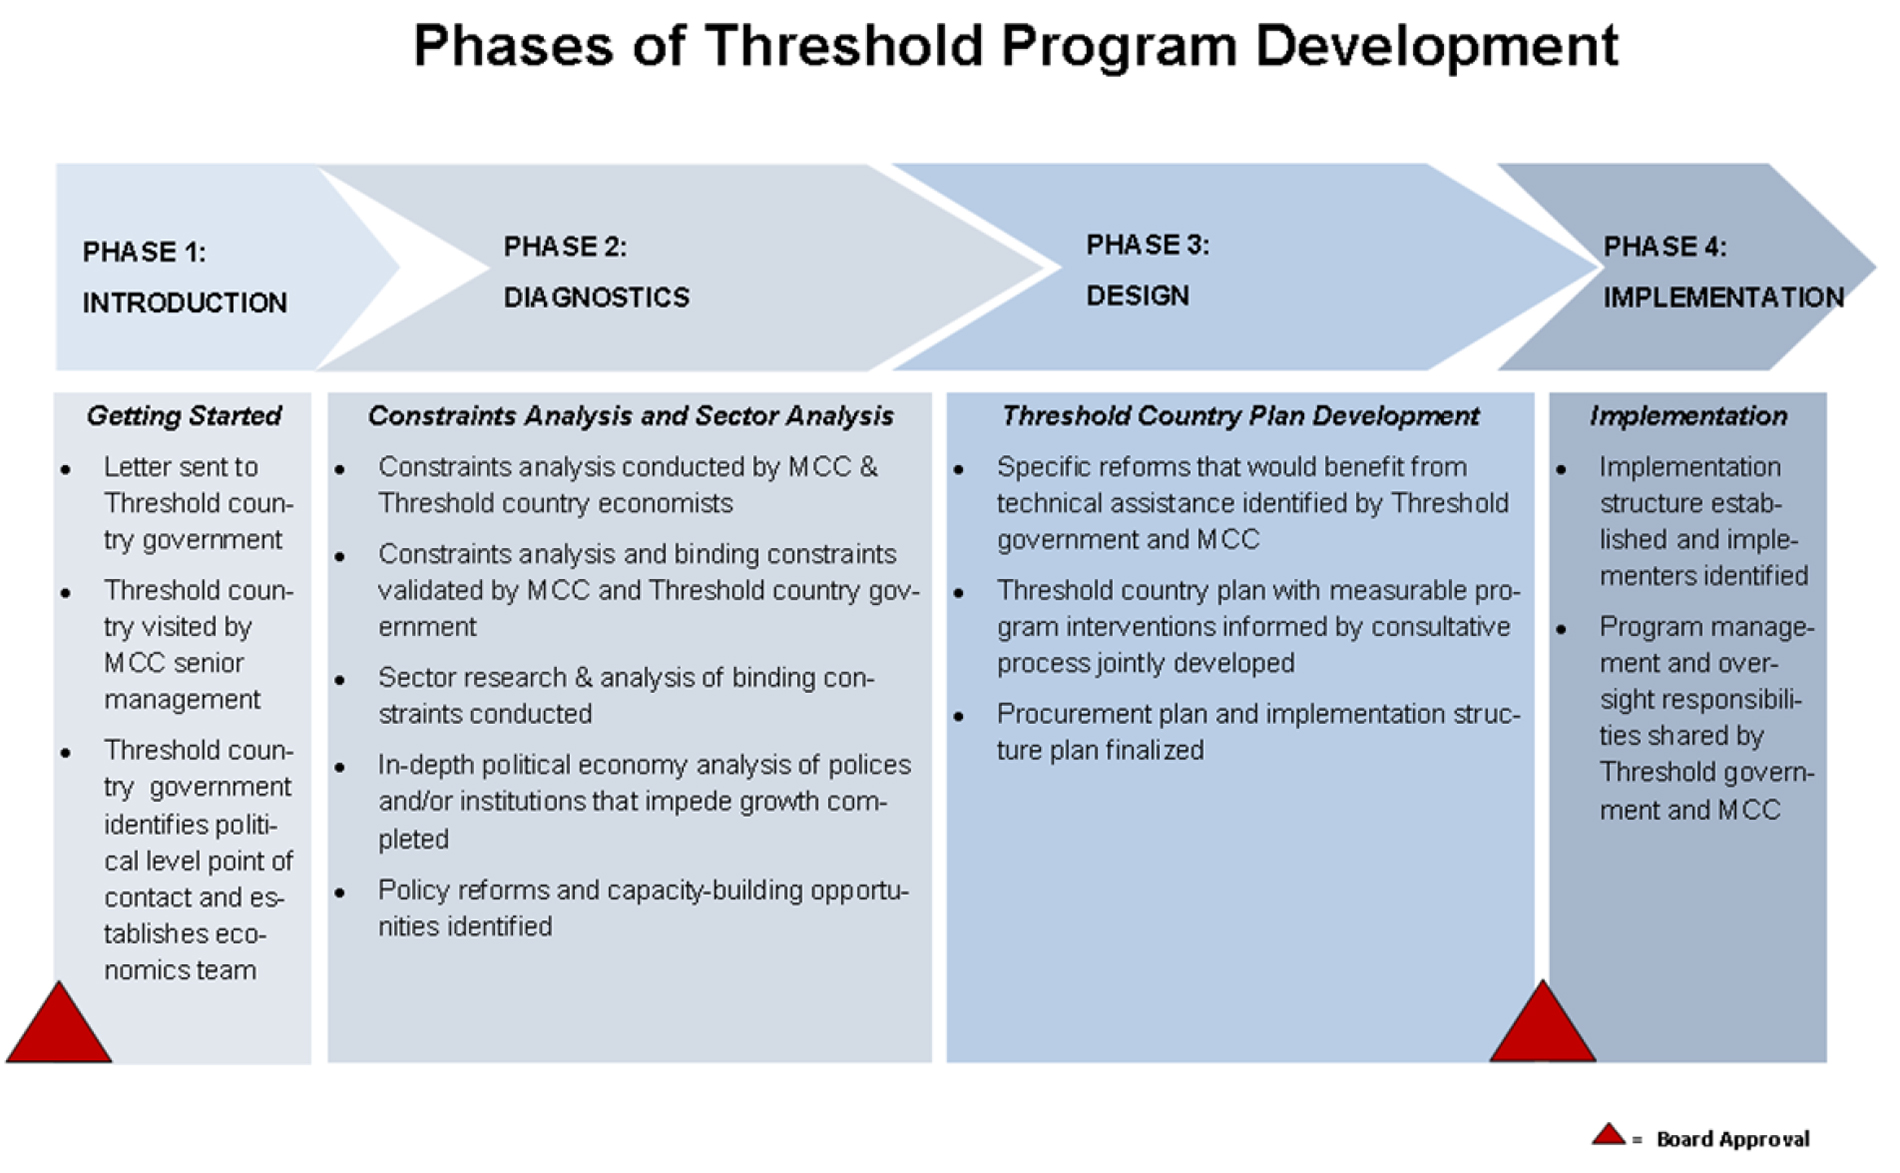 Phases of MCC Threshold Program Development